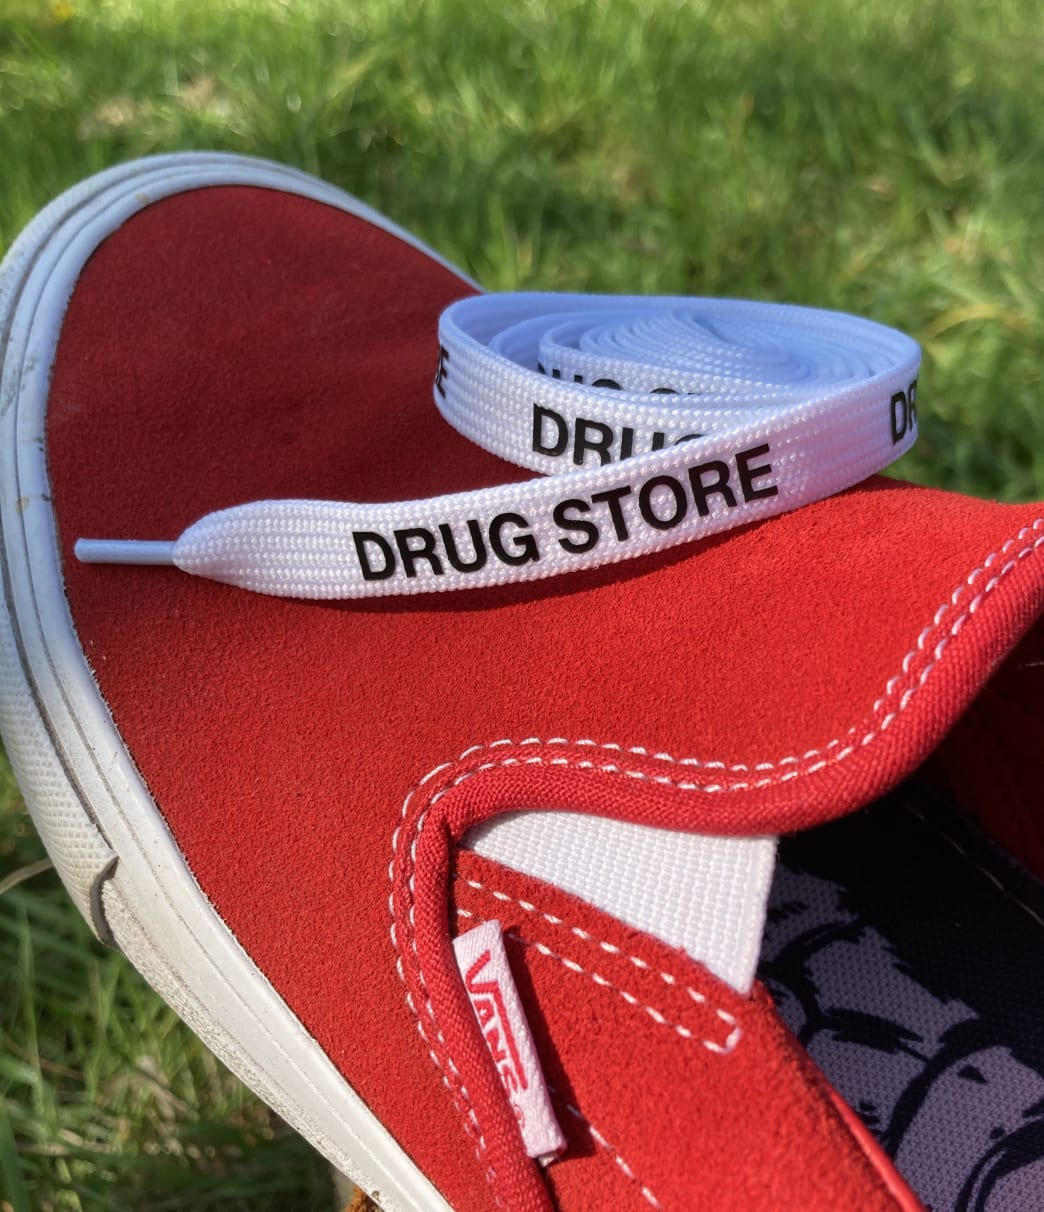 Drug Store Shoe Laces White | Laces by Drug Store 1